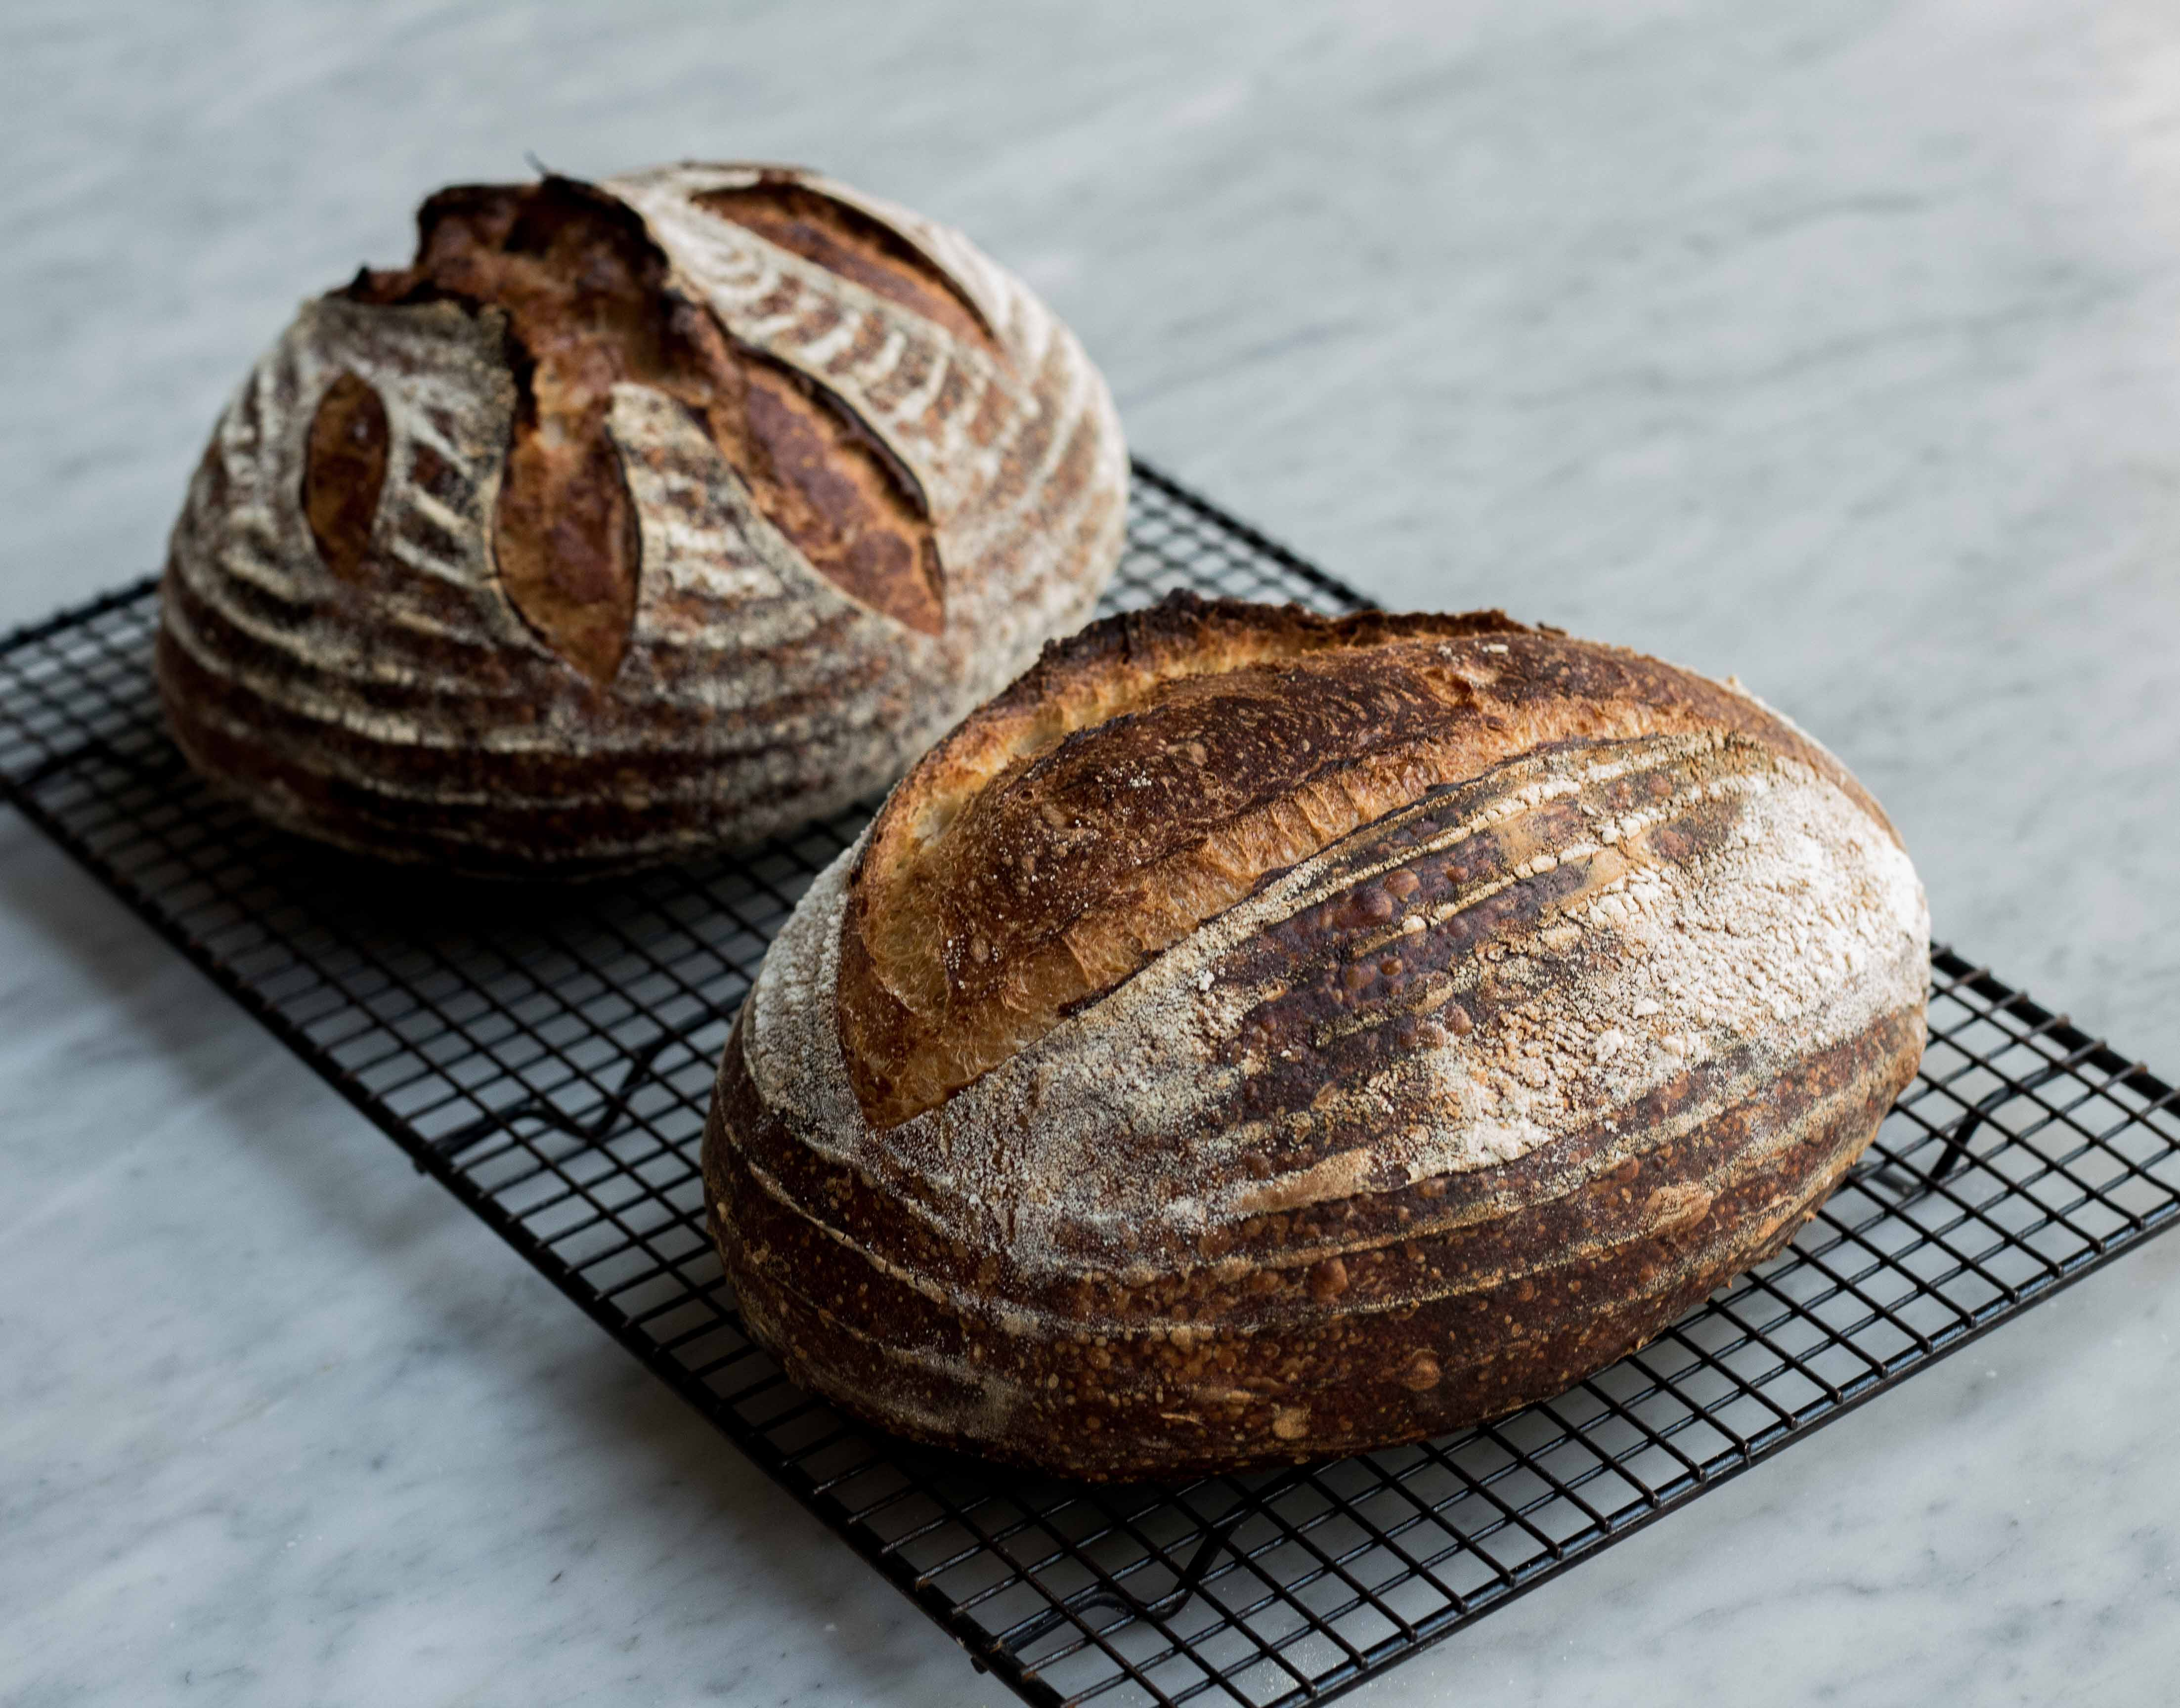 Two loaves of bread, baked by Maura Brickman